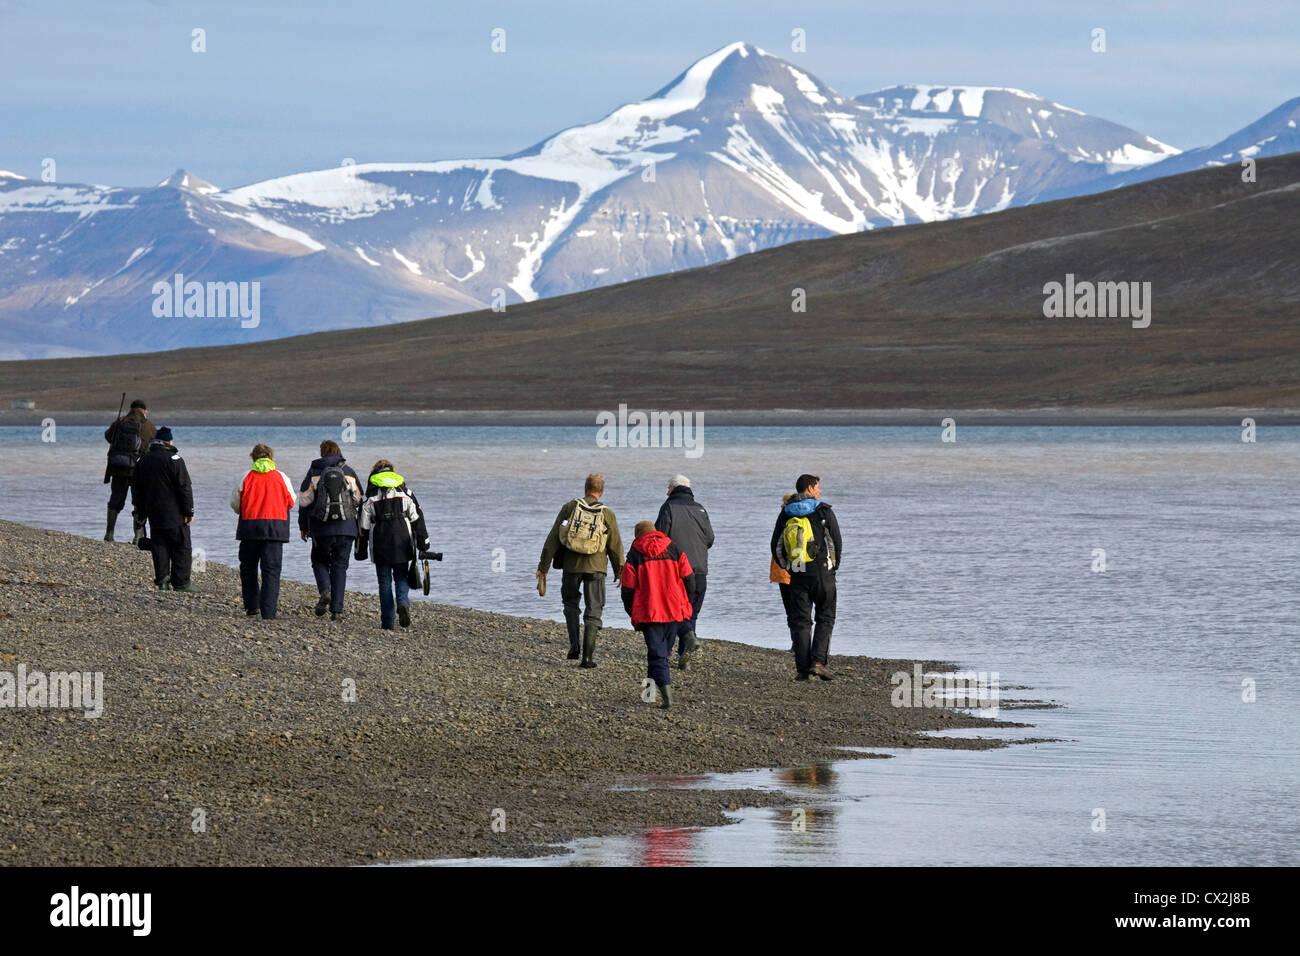 Tourists walking on beach along Tempel Fjord with guide armed with rifle against polar bears in Svalbard, Spitsbergen, - Stock Image